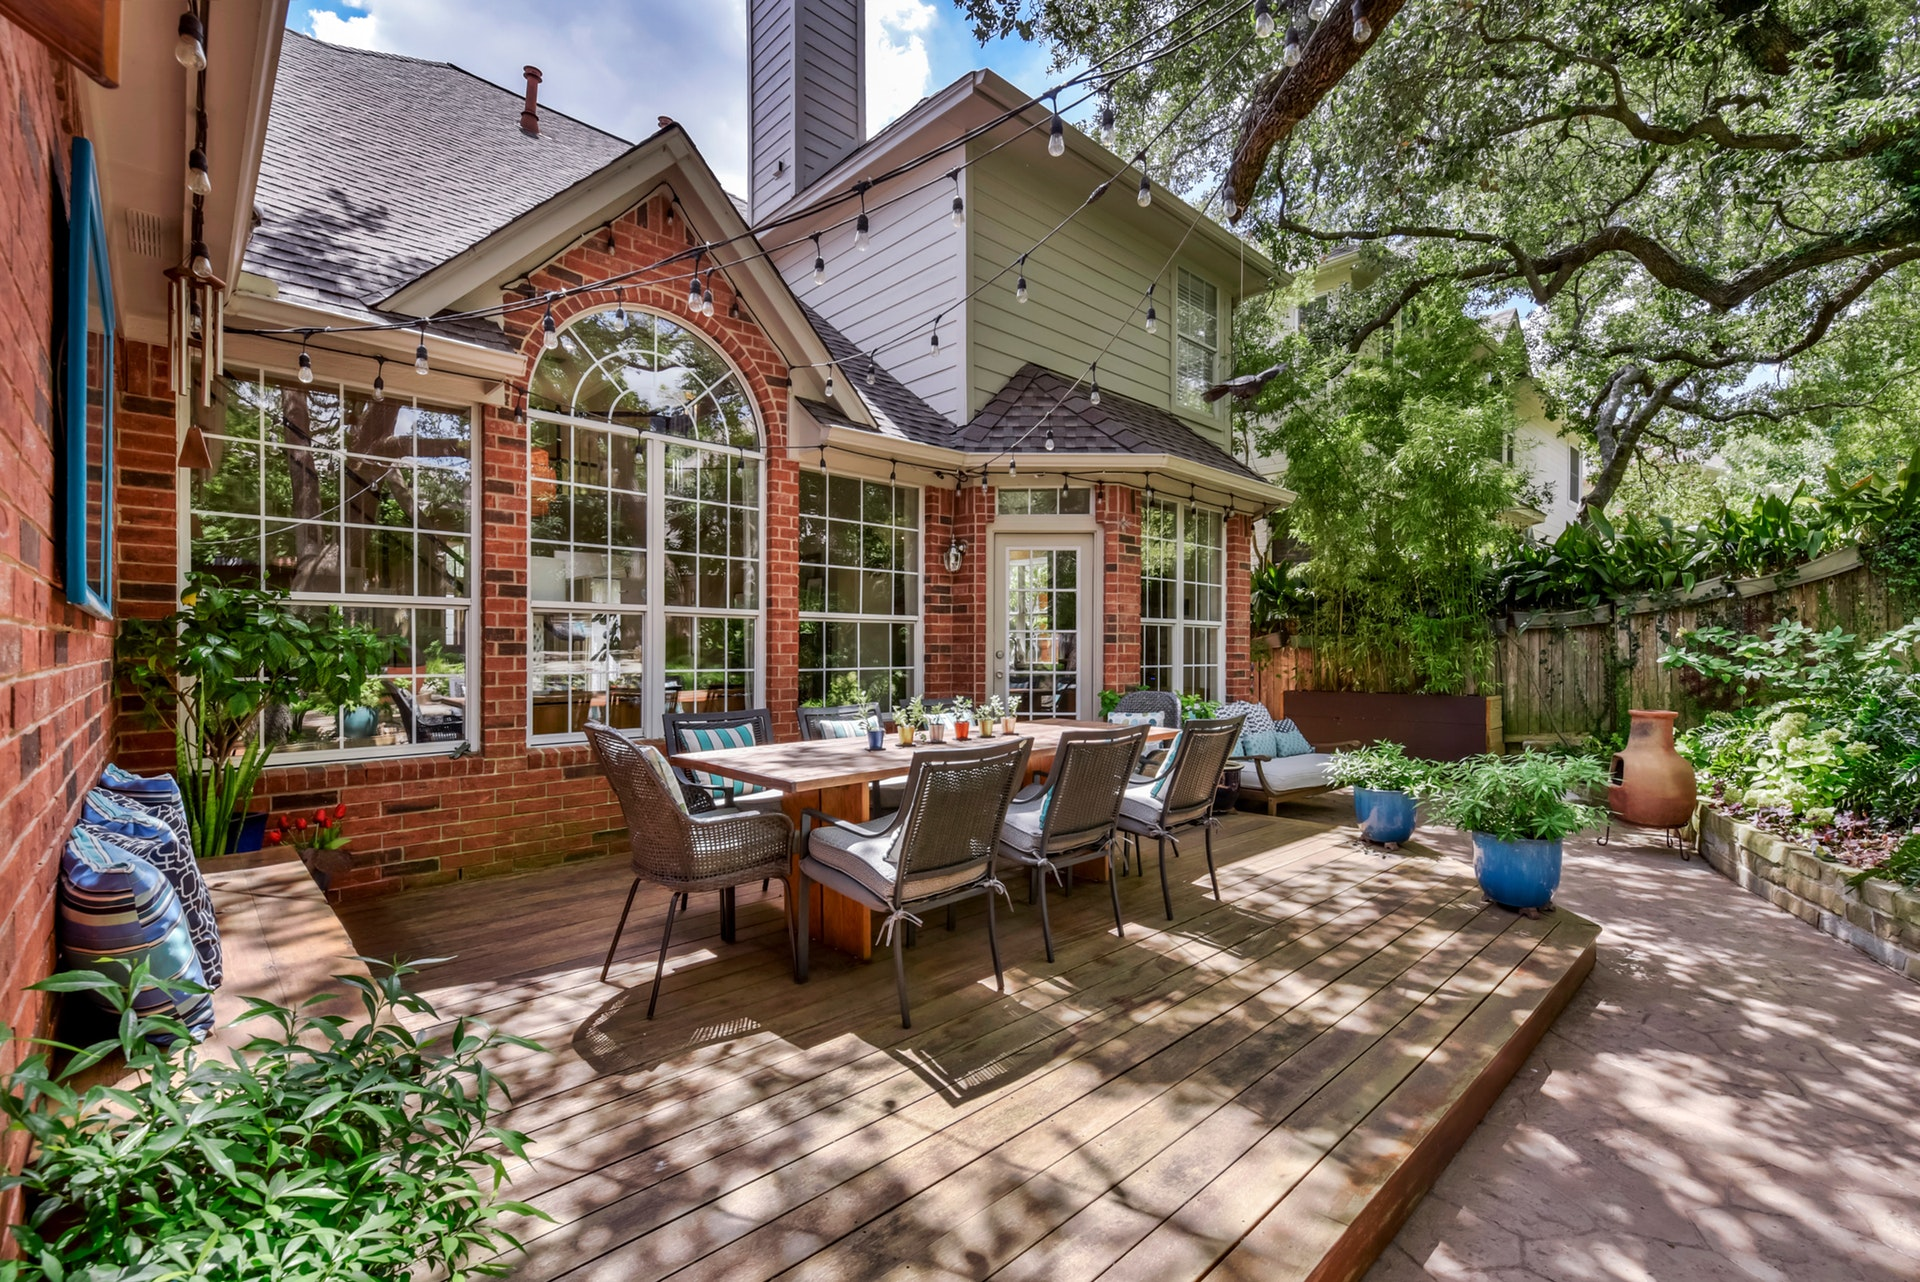 11100 Amesite - Outdoor Dining